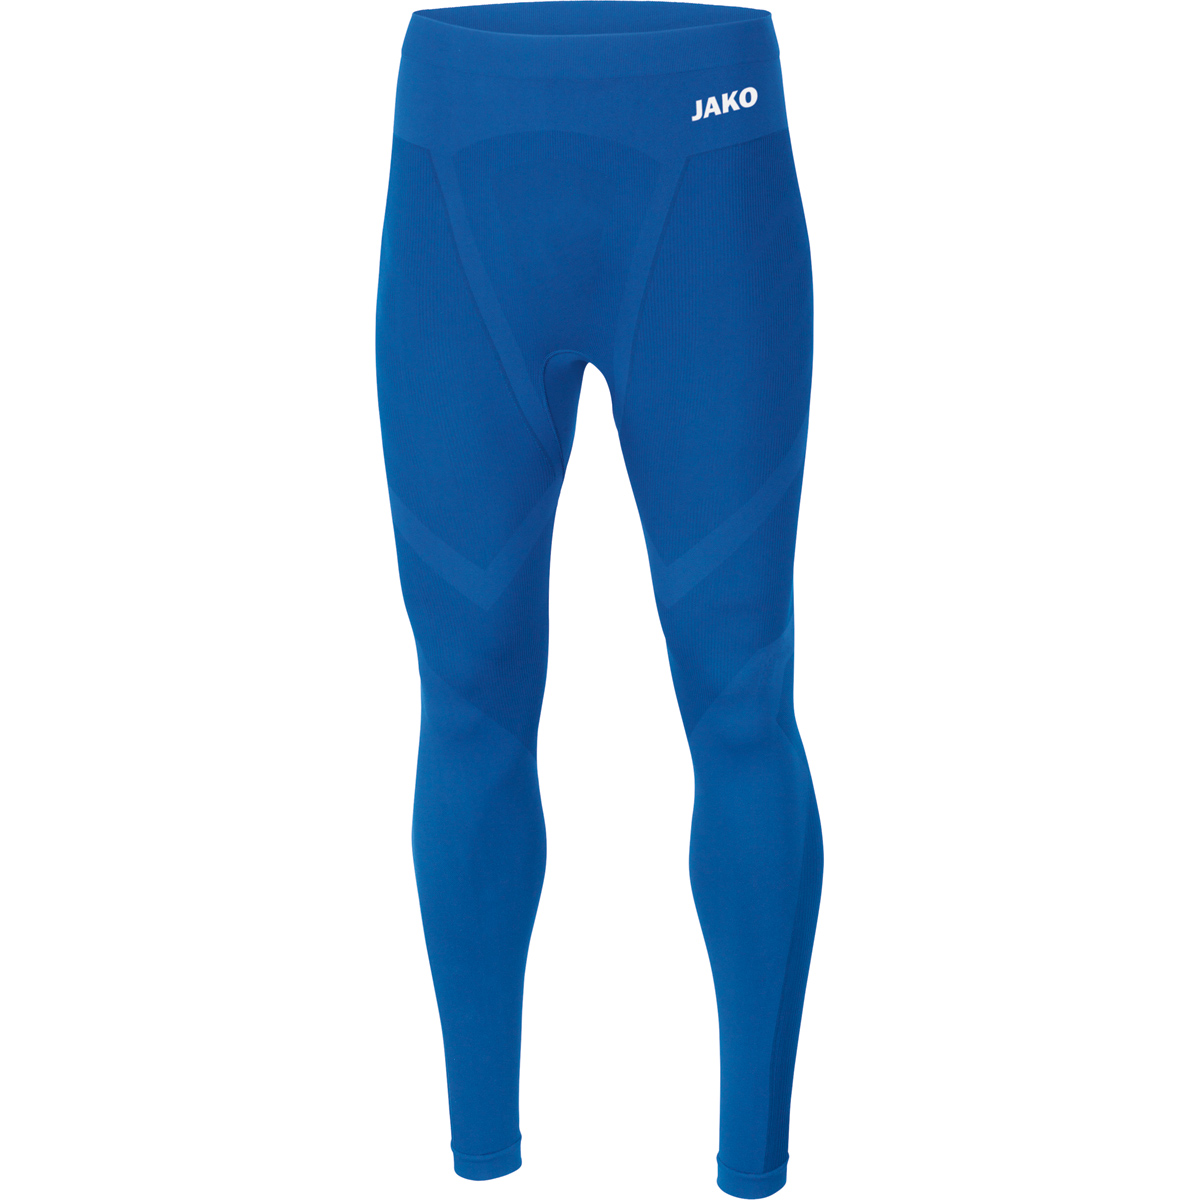 Long Tight Comfort 2.0 - Kinder | Jako 6555